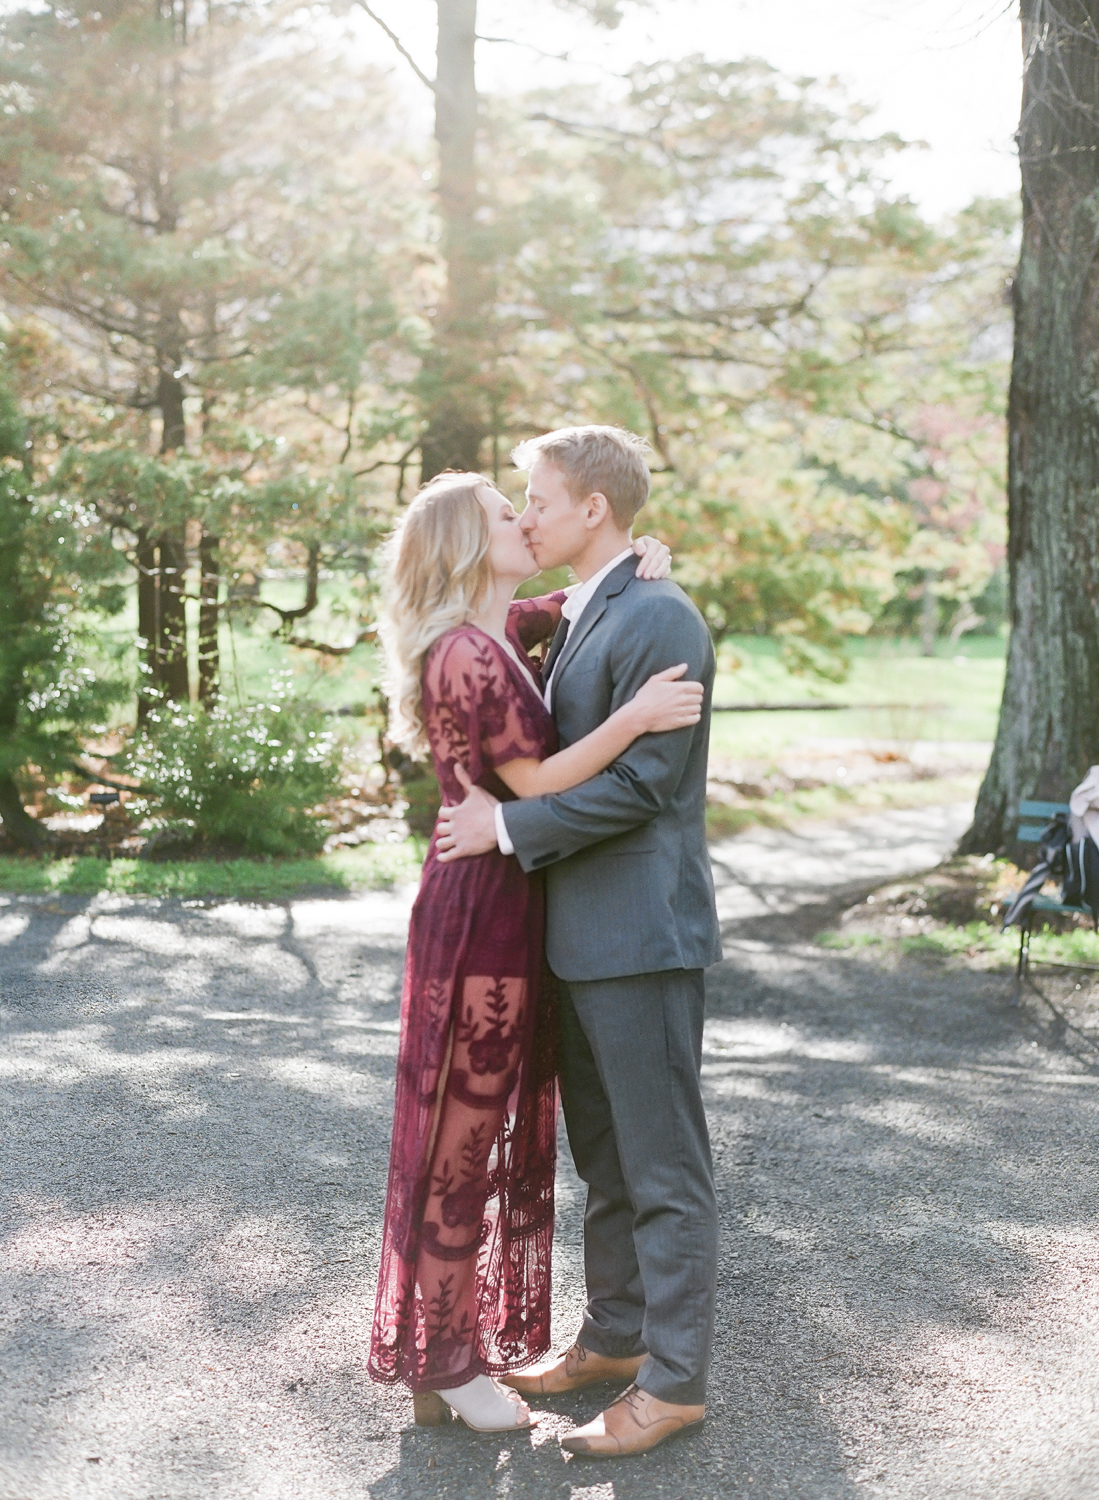 Jacqueline Anne Photography - Amanda and Brent-98.jpg